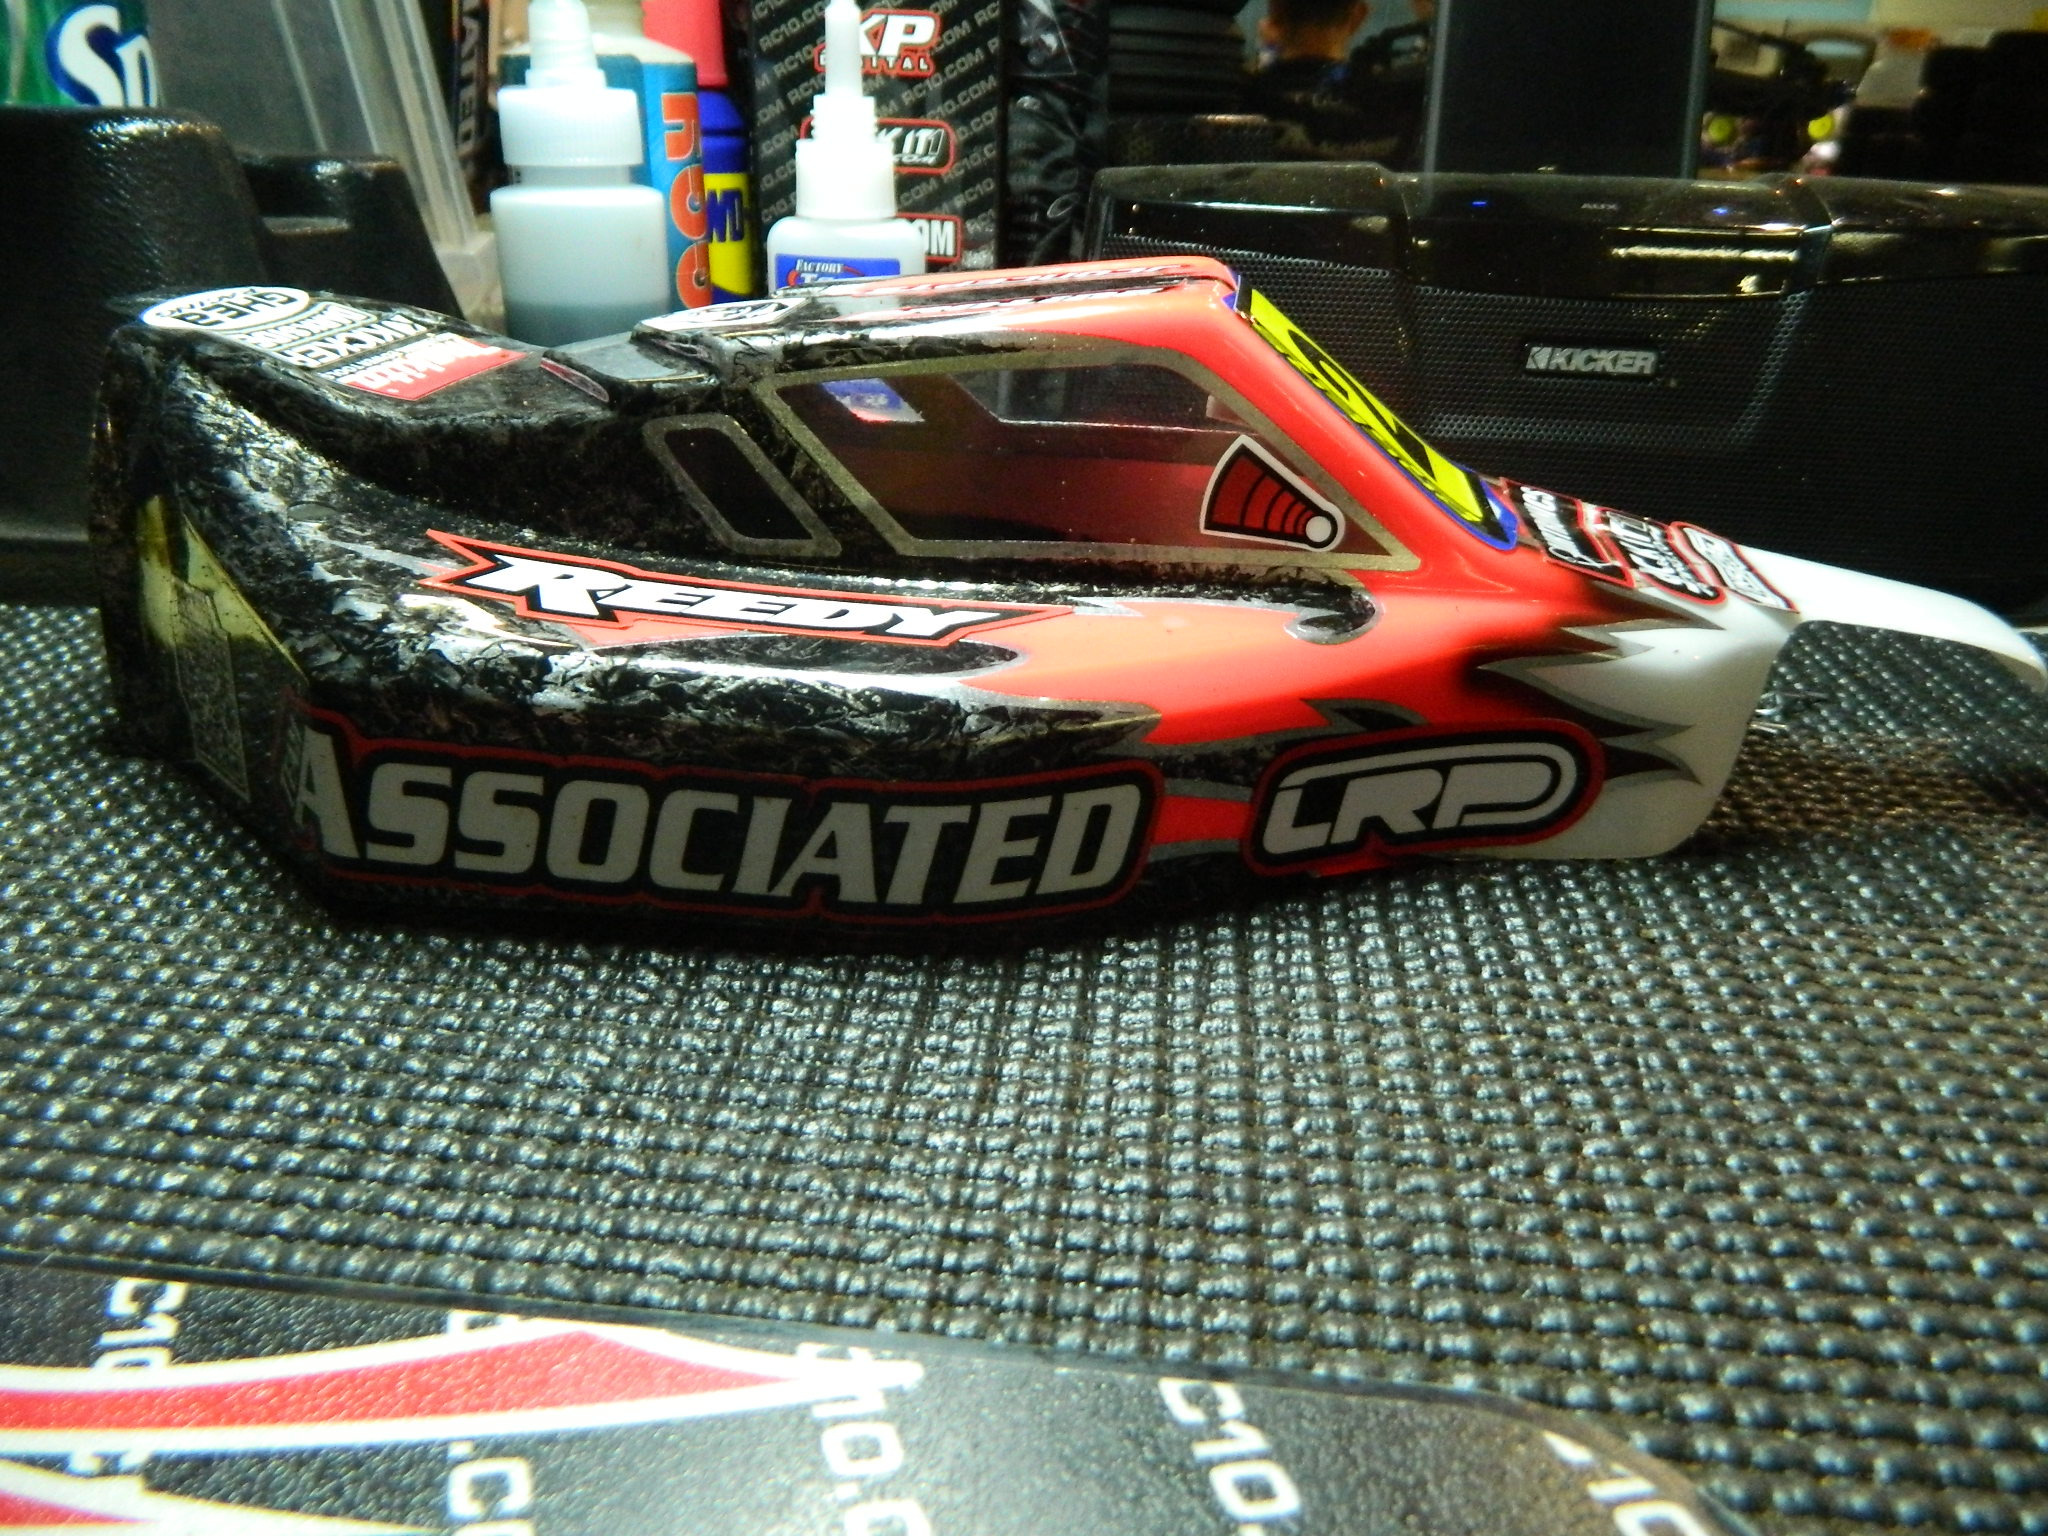 You are browsing images from the article: JConcepts Spring National Series